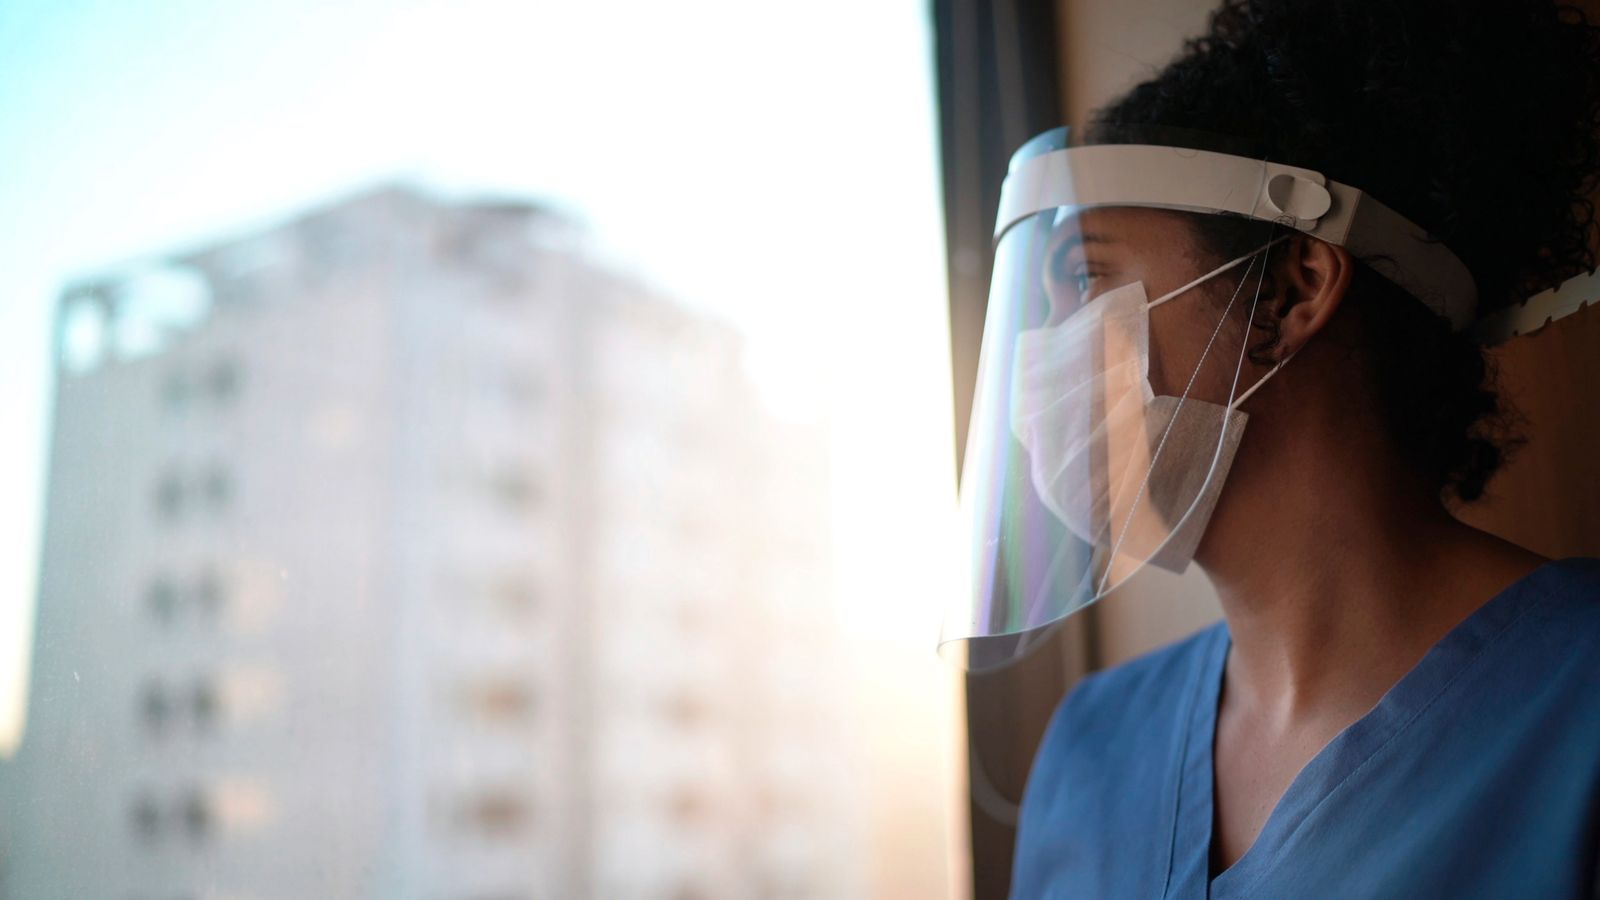 Nurse with protective face mask looking through window at hospital